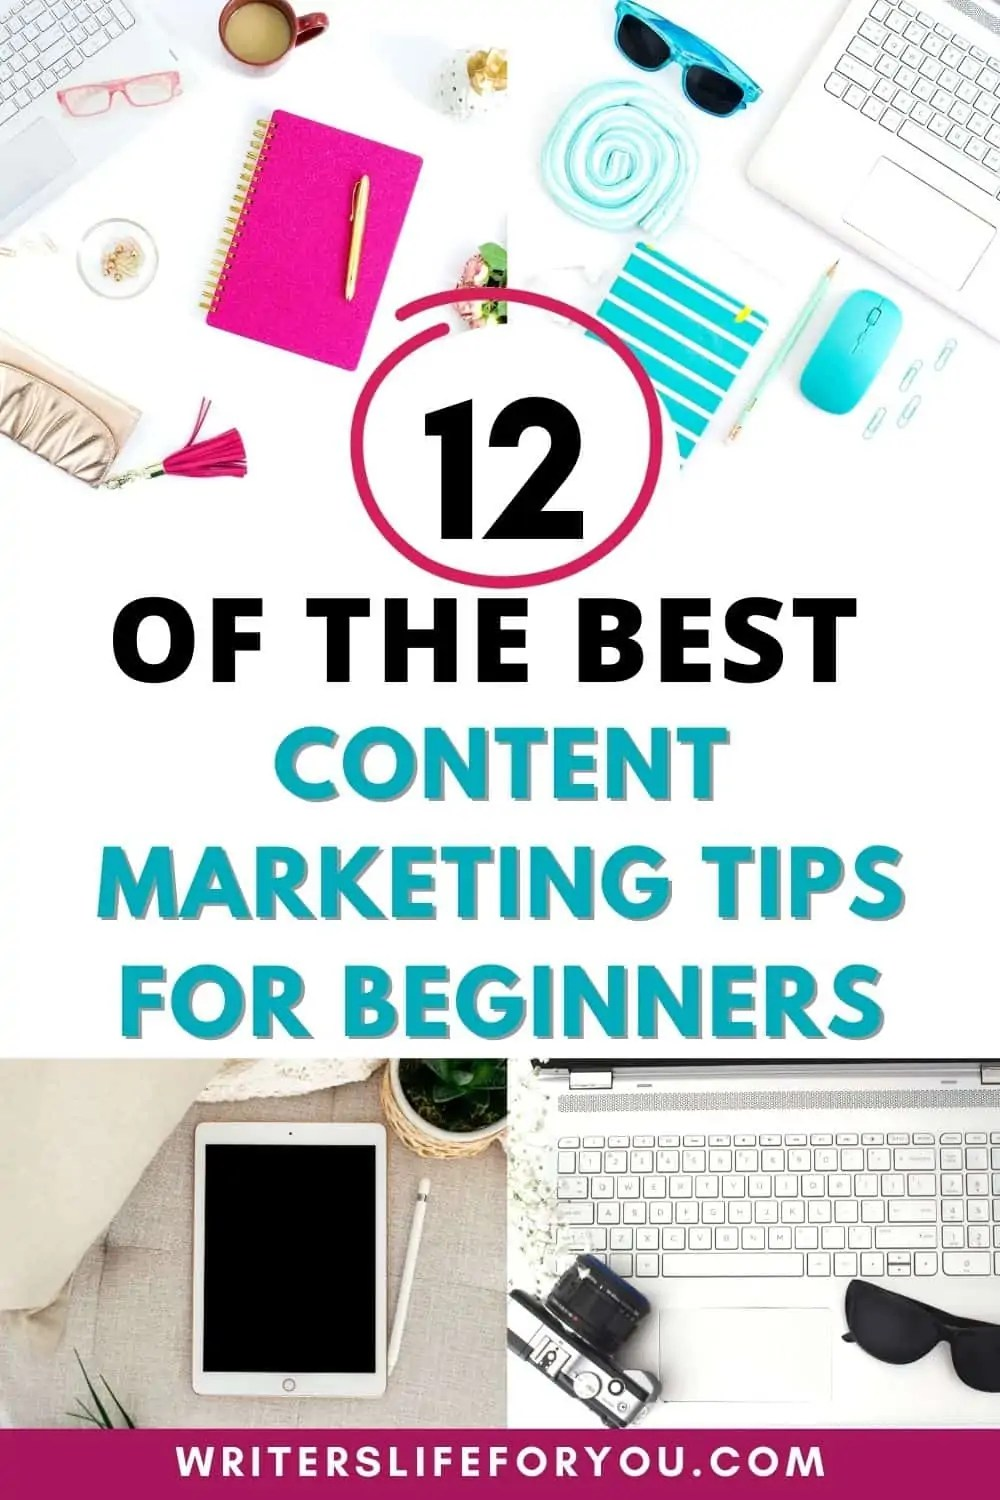 12 Simple Content Writing Tips for Beginners: How to Look Like a Pro When You're Not